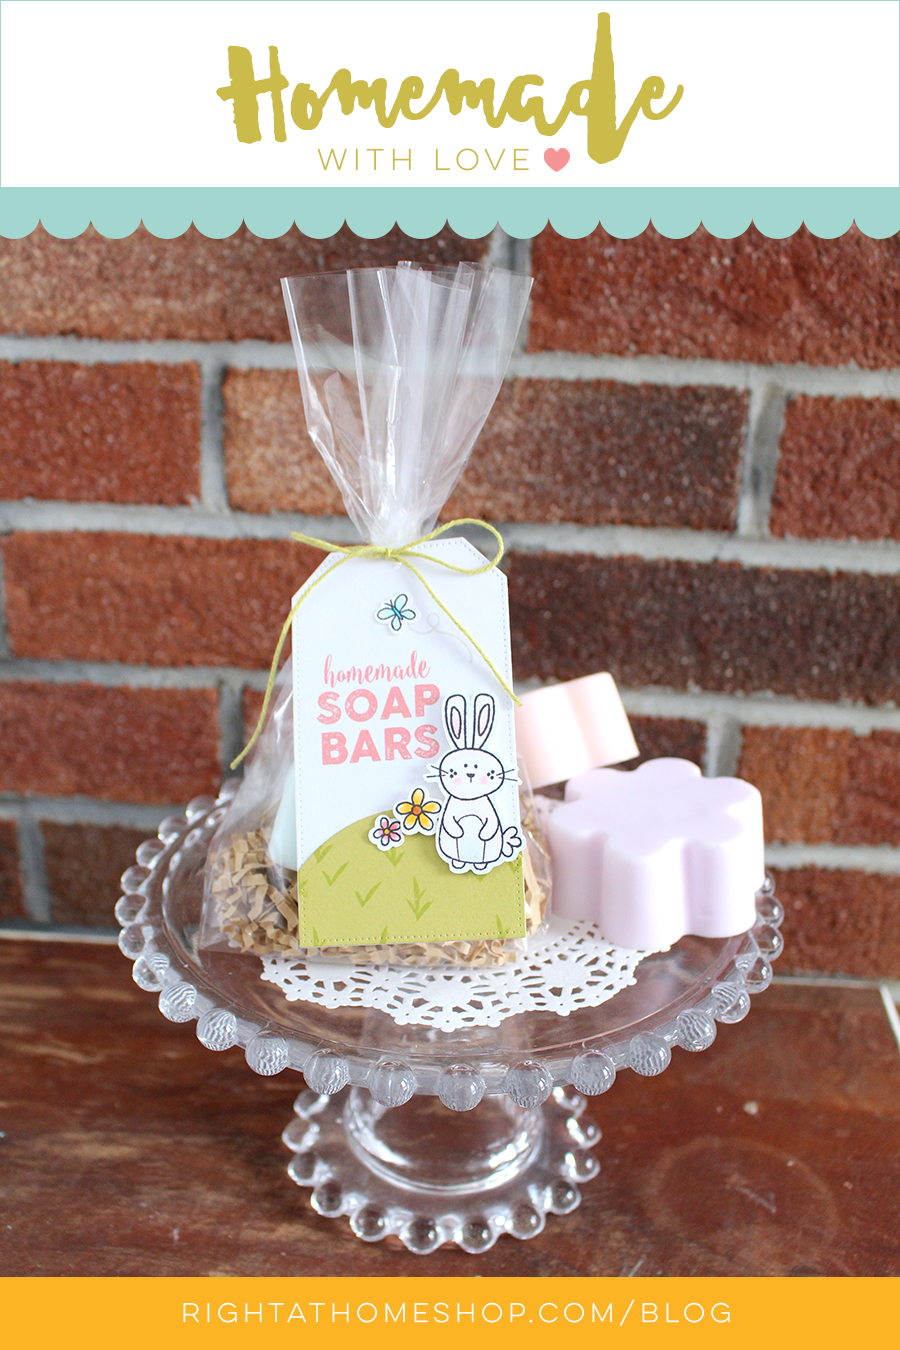 DIY Hand Soap Bars + Gift Tag // Homemade with Love Series Day #1 - rightathomeshop.com